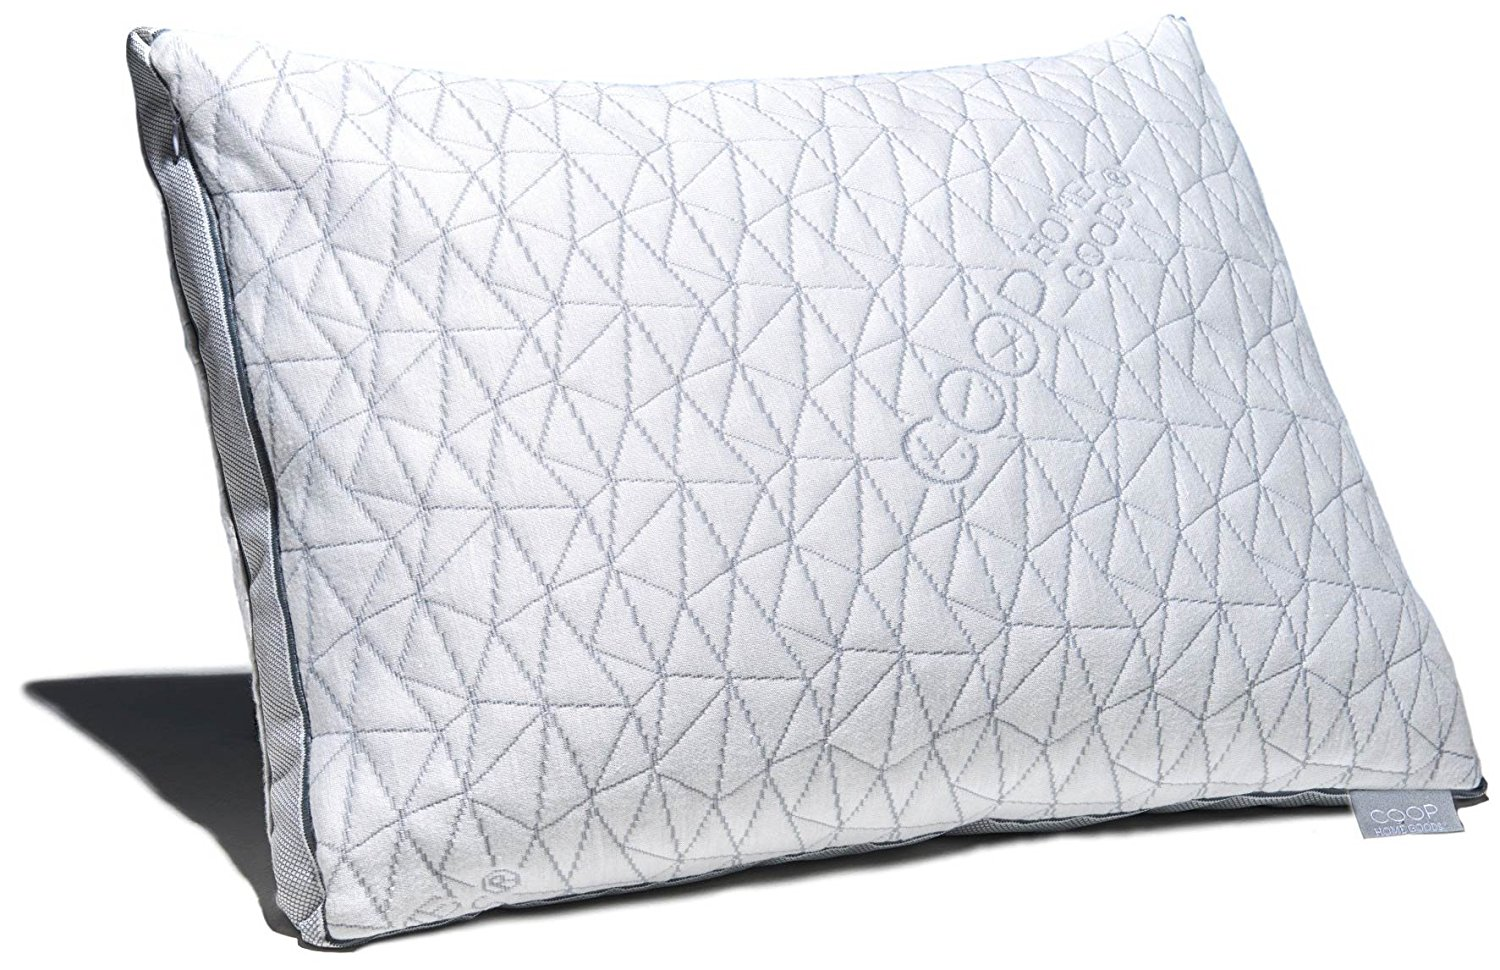 Best Pillow For Sleeping On Your Back Best Pillows 2019 Sleep Better With These Top Options